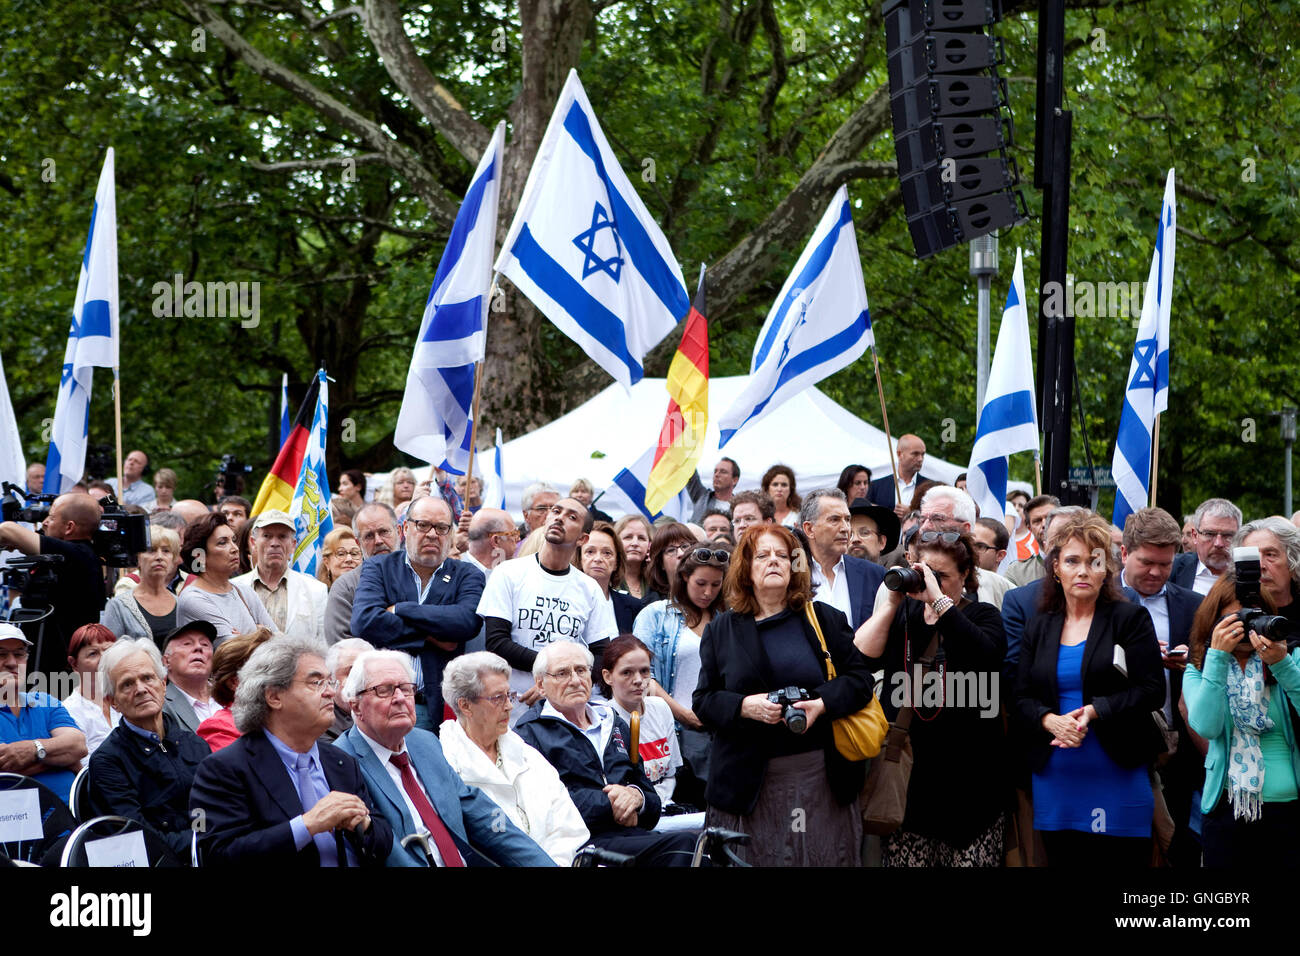 Rally against anti-Semitism in Munich, 2014 - Stock Image